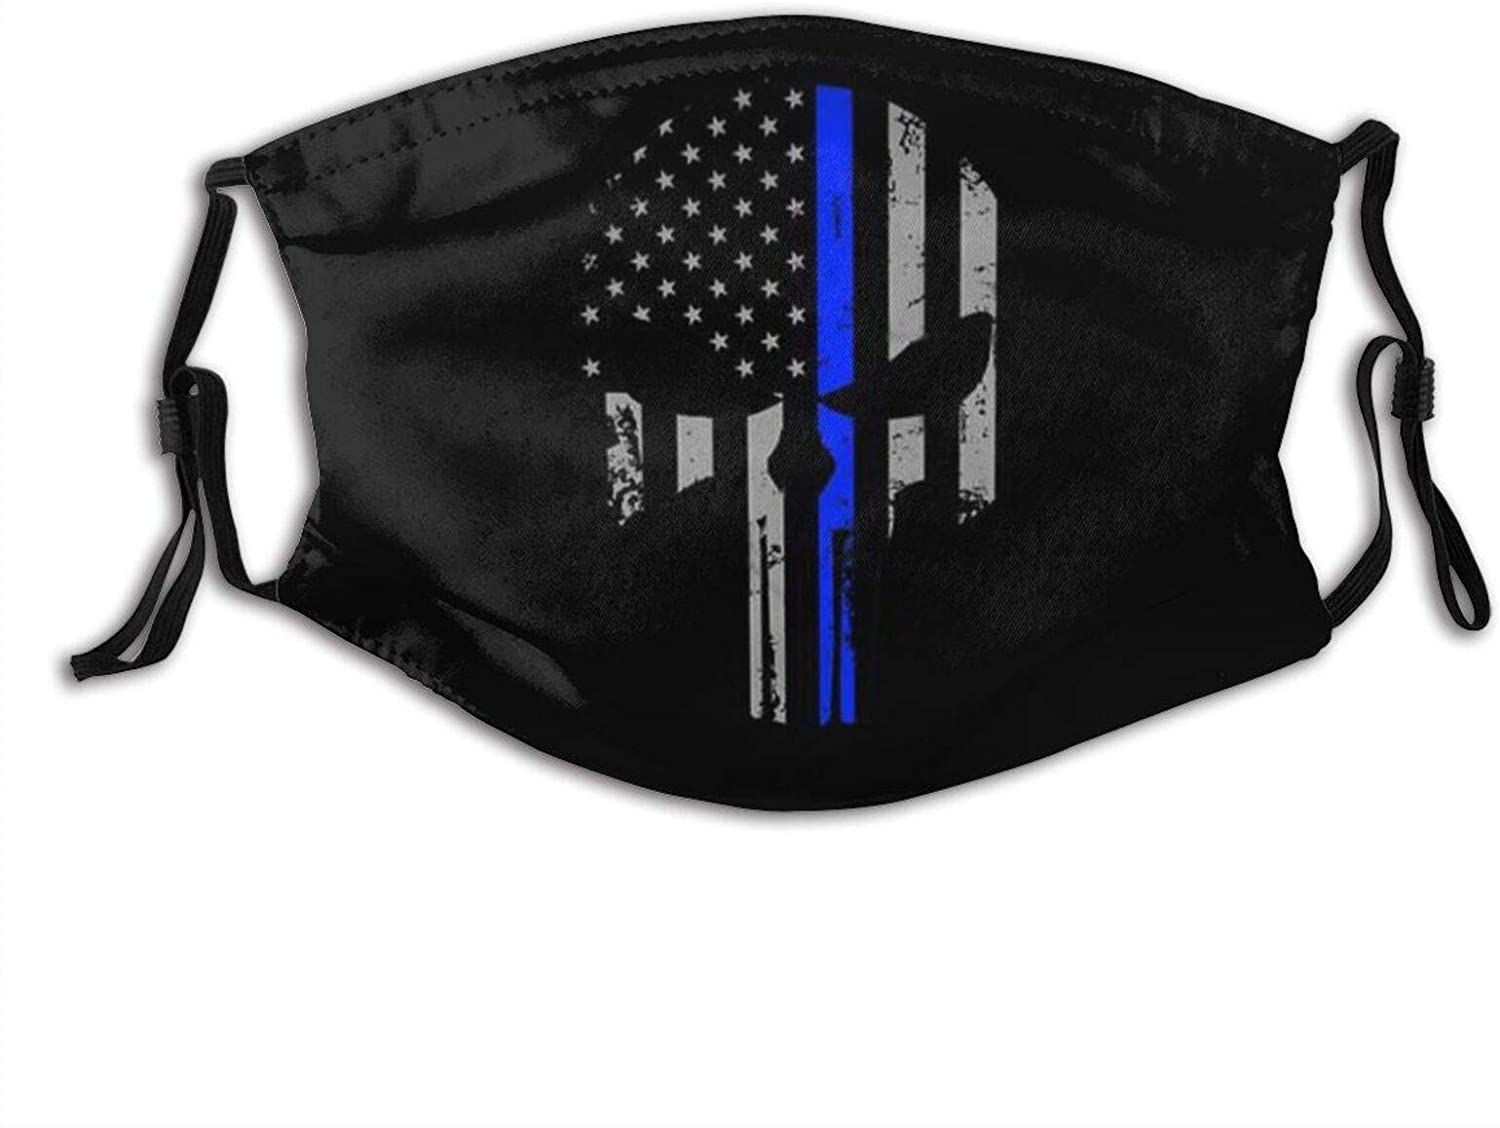 Us Police Flag Thin Blue Line-Face Mask Balaclava, Washable&Reusable With 2 Filters,For Adult Women Men&Teens